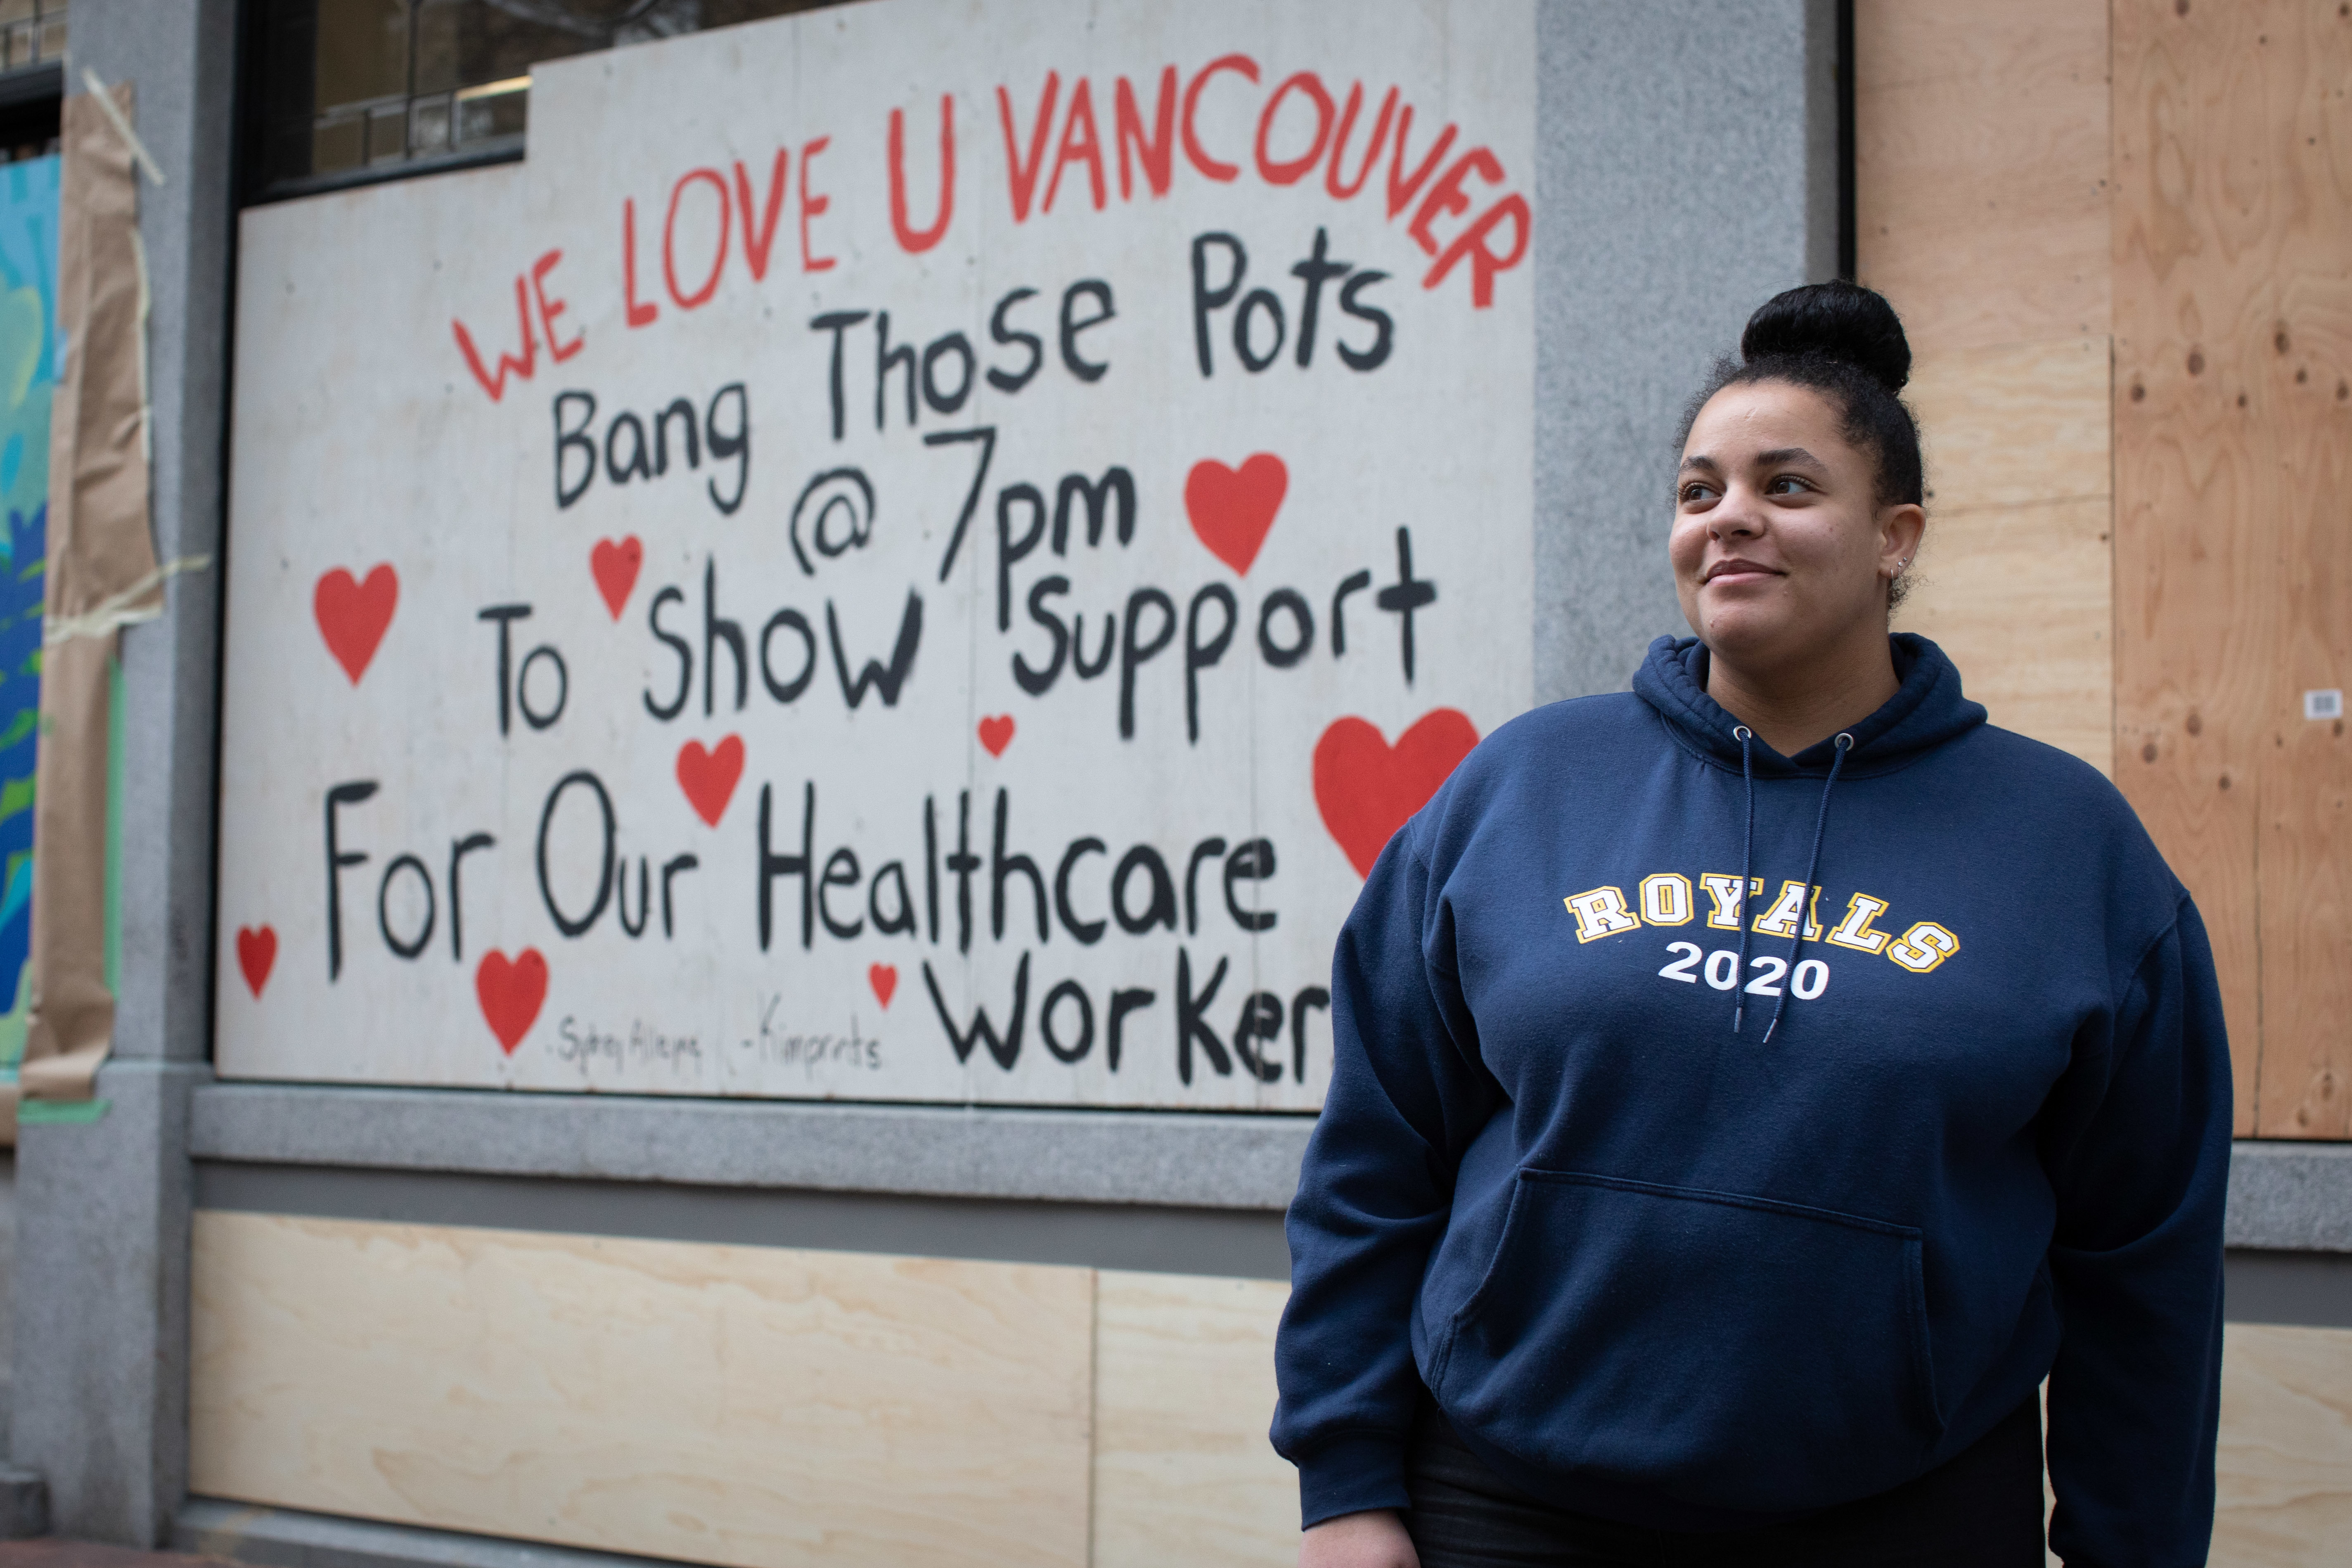 Briscoe's daughter Sydney Alleyne has painted several of the panels, including one that reminds Vancouverites to celebrate health care workers every night at 7 p.m. from their windows and balconies.